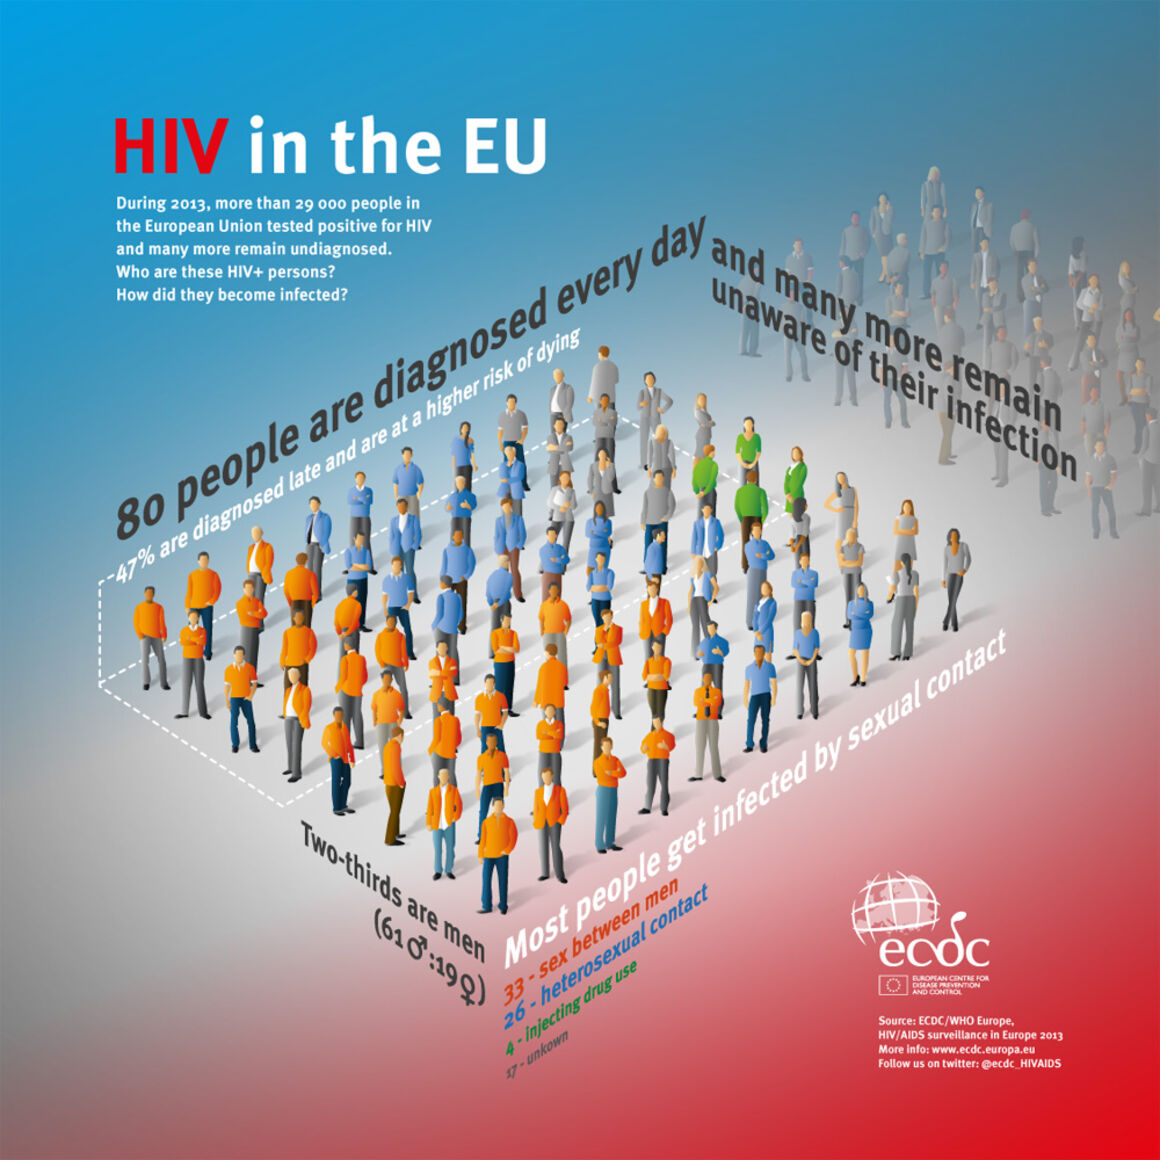 Infographic showing HIV surveillance data in 2013